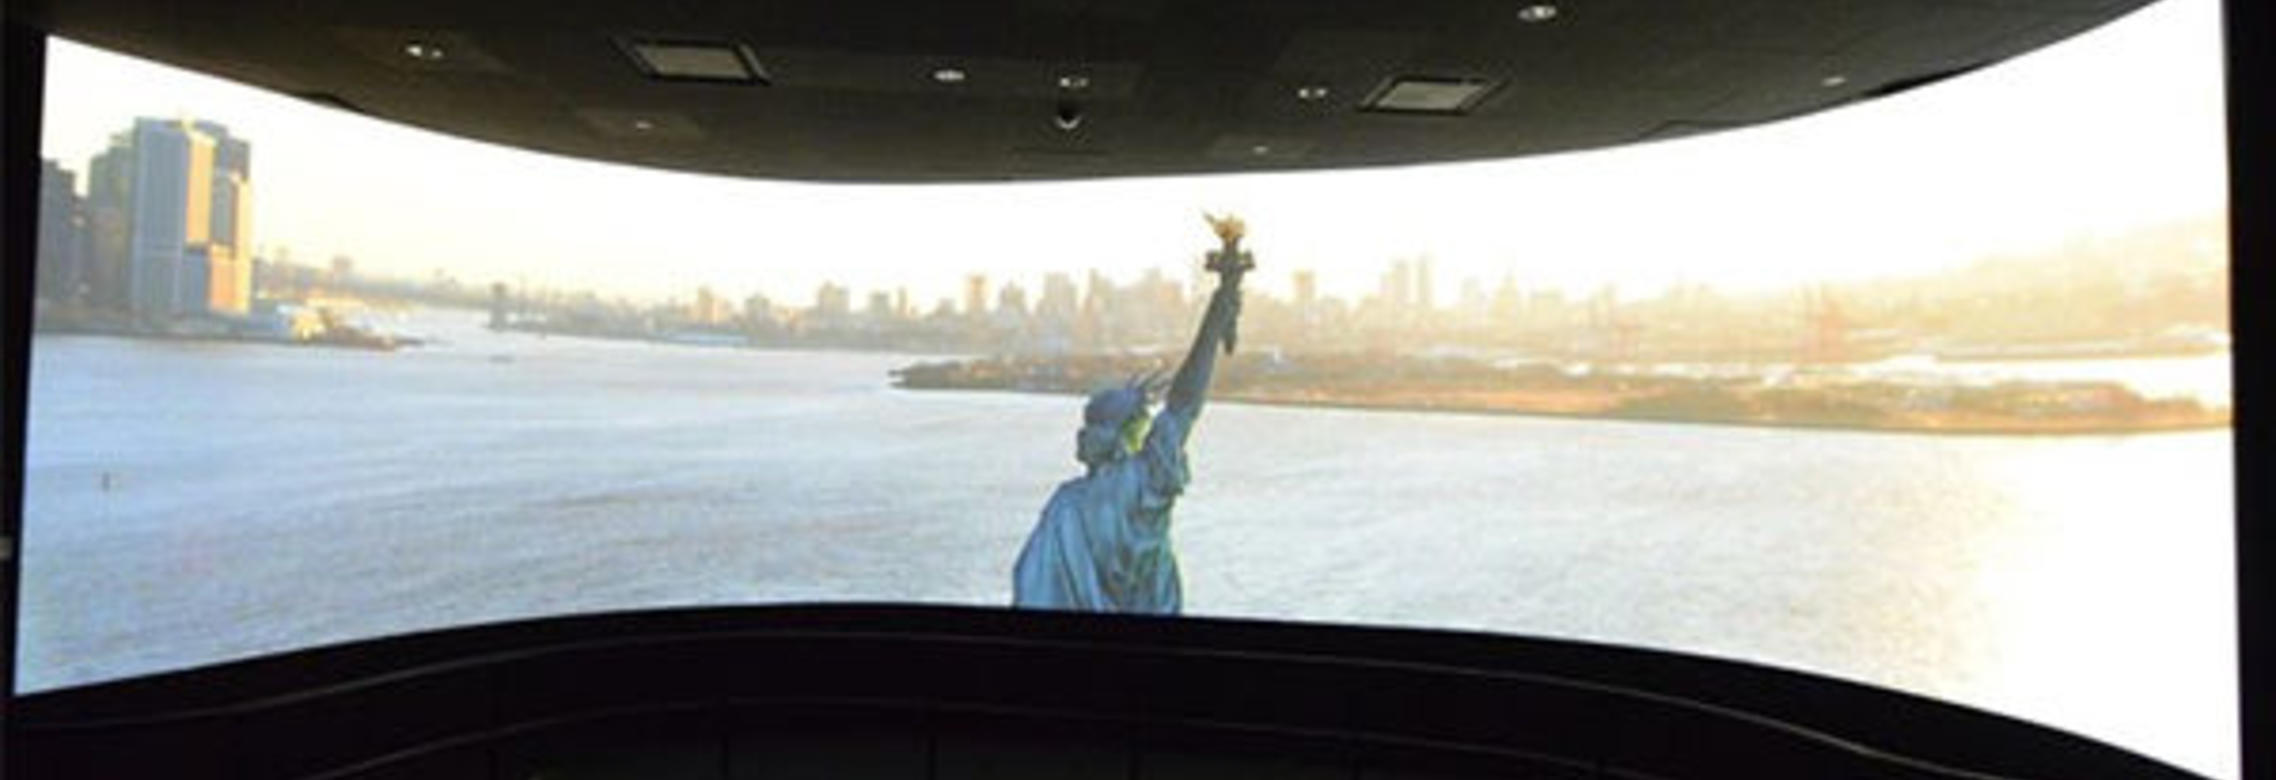 panasonic-projectors-case-study-statue-of-liberty-museum-thumbnail-image